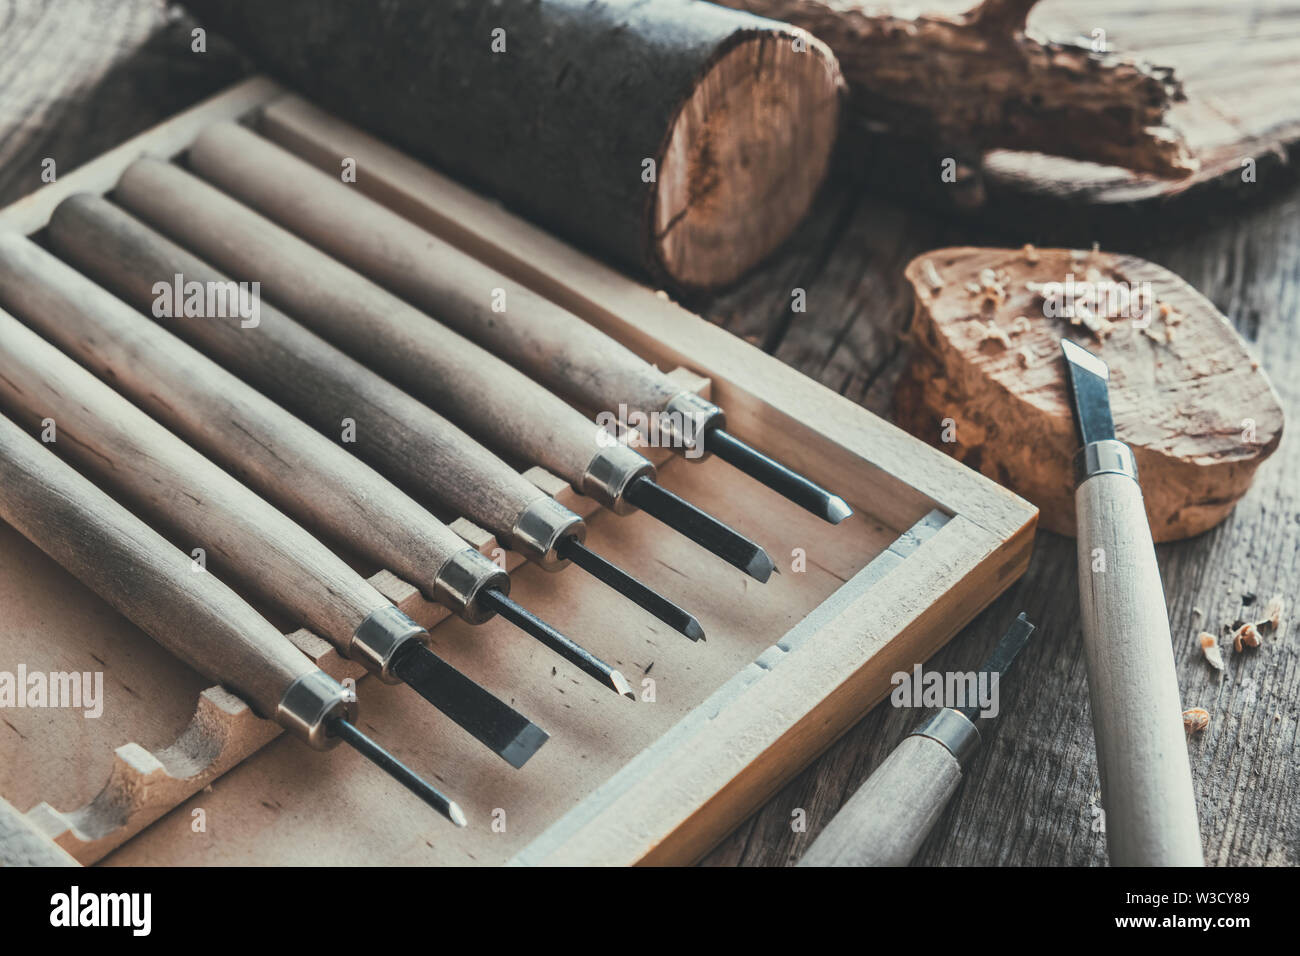 Woodworking tools for wood carving and trees cuts on wooden board. - Stock Image